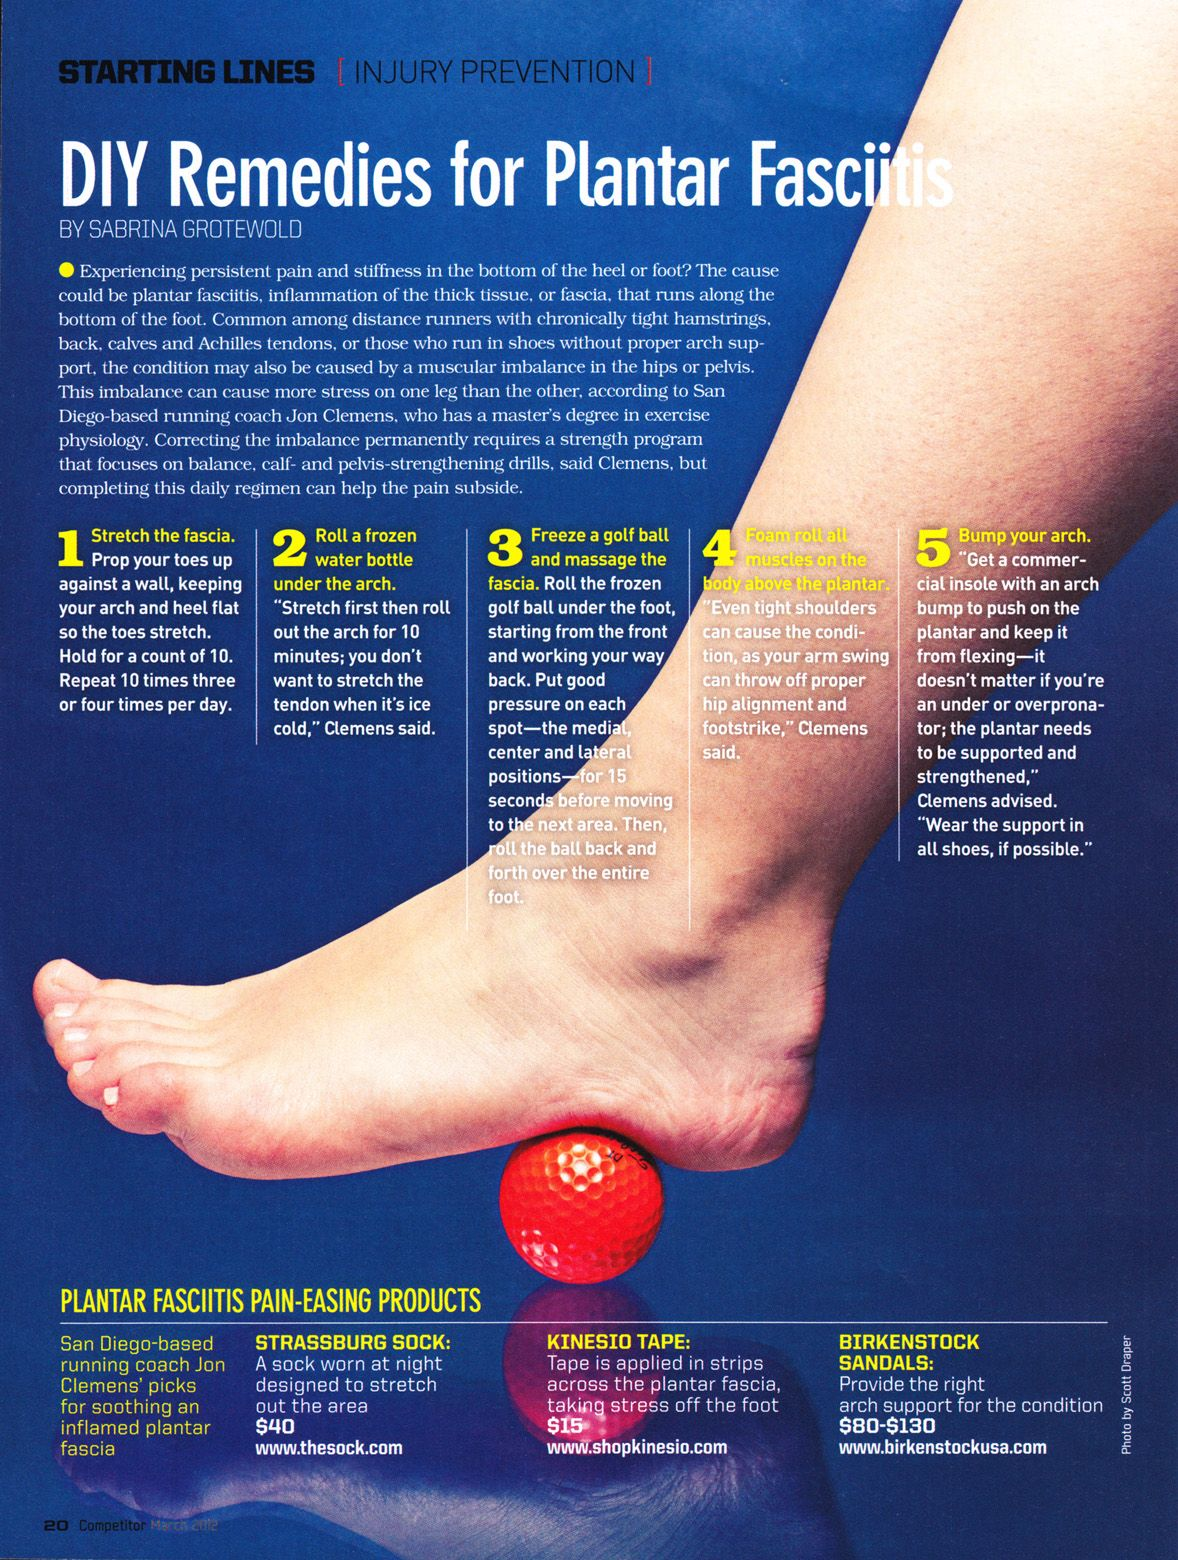 DIY remedies for Plantar Fasciitis